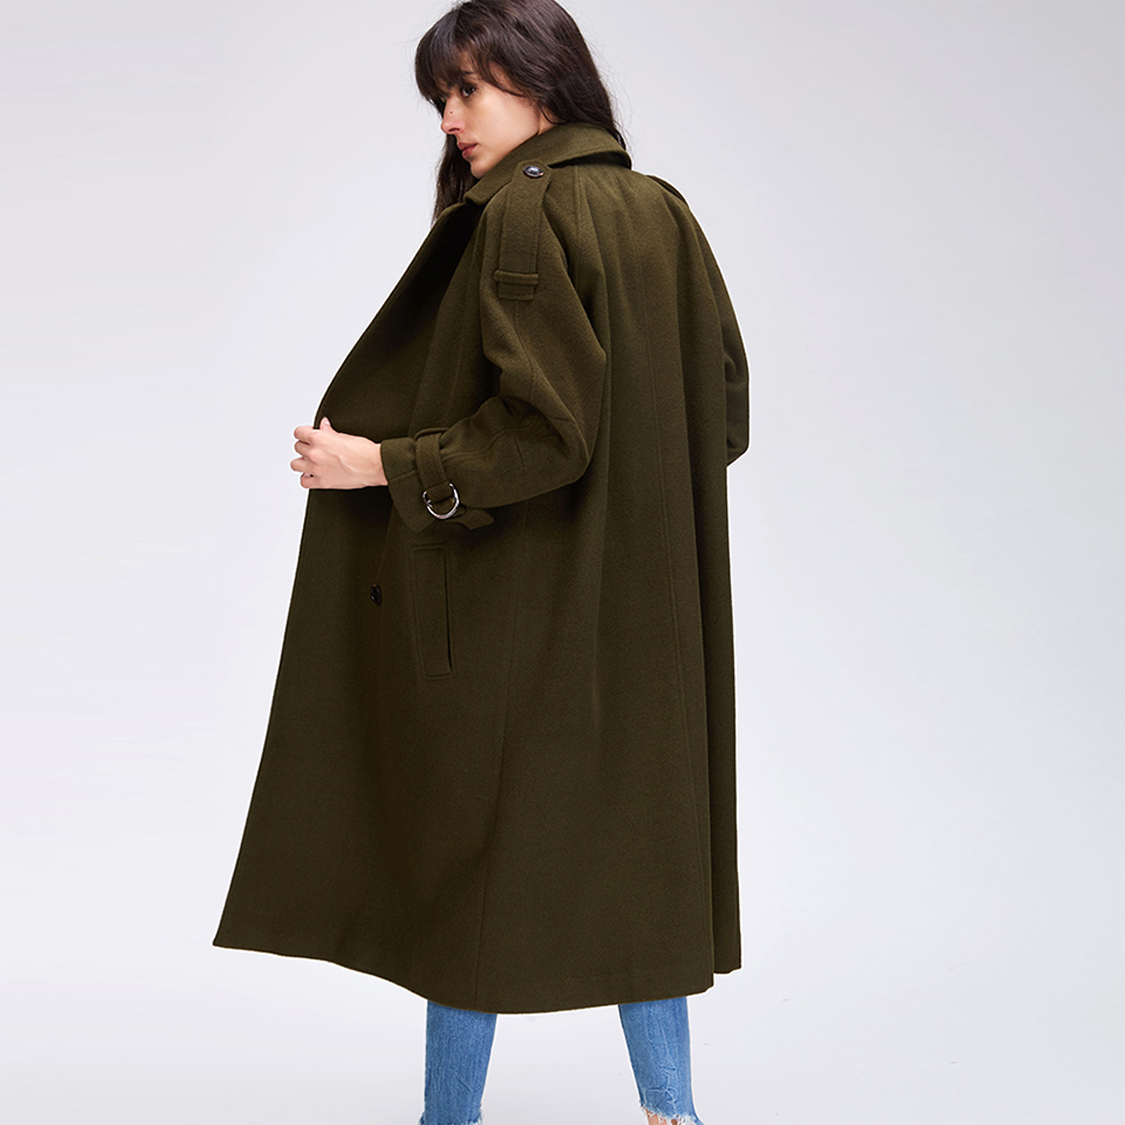 JAZZEVAR 2019 Autumn winter New Women s Casual wool blend trench coat oversize Double Breasted X